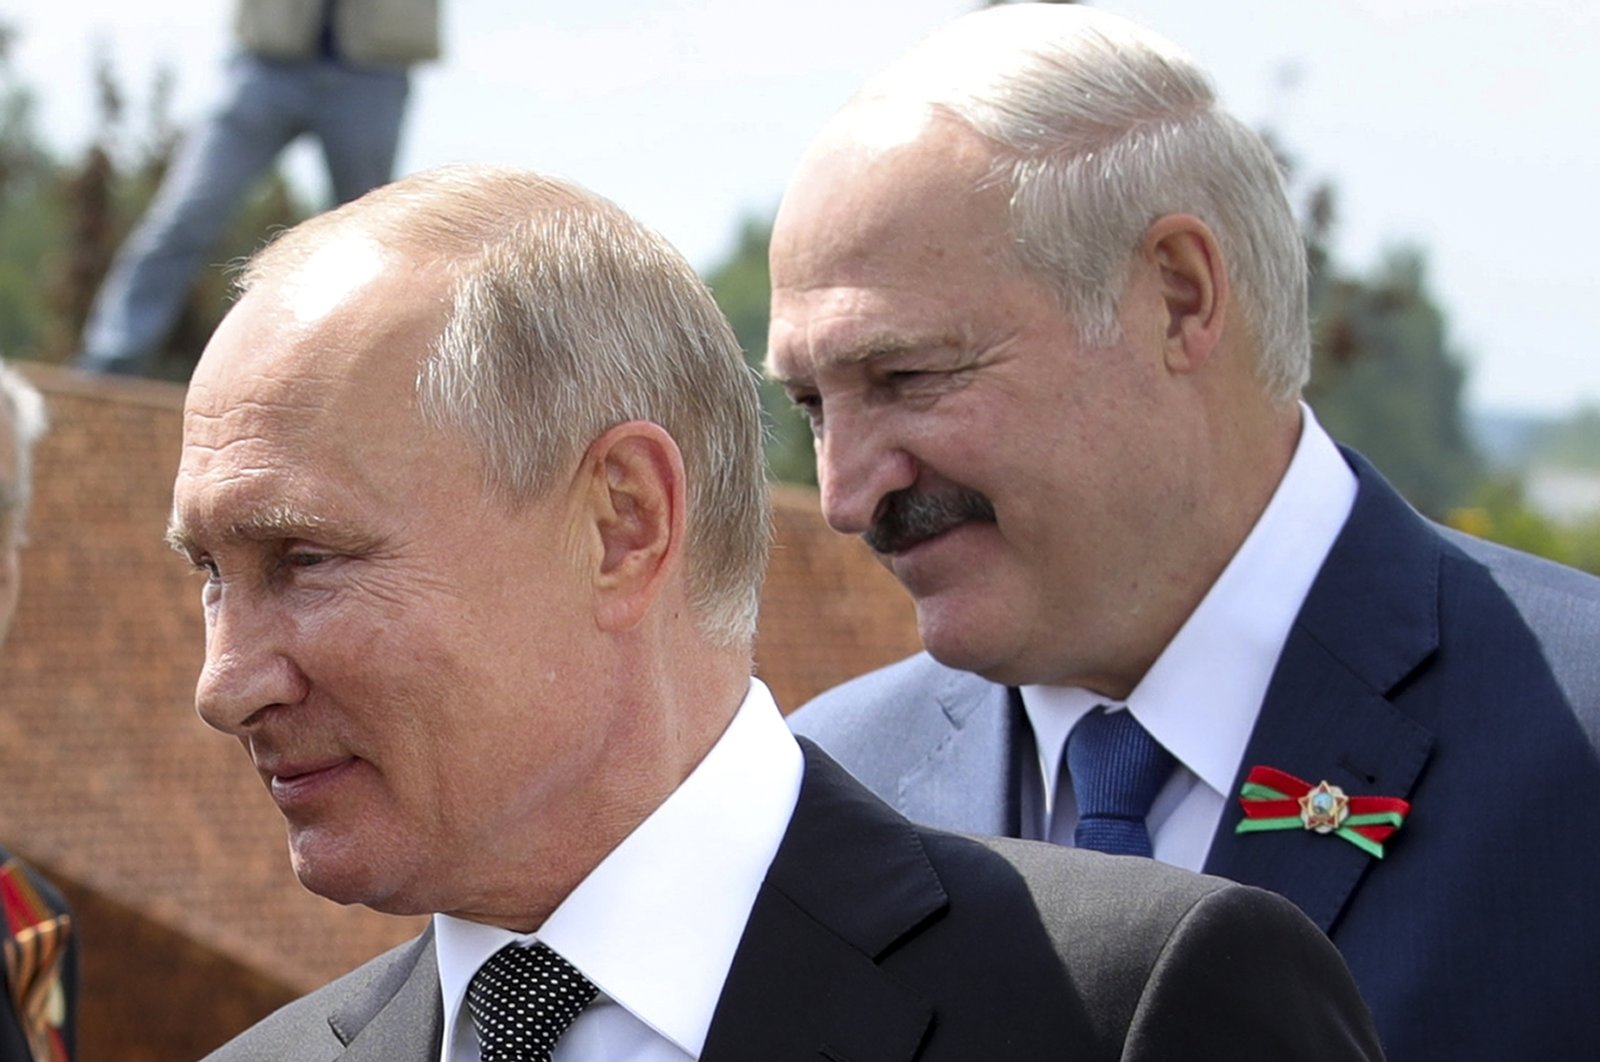 In this June 30, 2020 file photo, Russian President Vladimir Putin (L) and Belarusian President Alexander Lukashenko greet World War II veterans during an opening ceremony of the monument in honor of the World War II Red Army, in the village of Khoroshevo, Russia. (AP Photo)